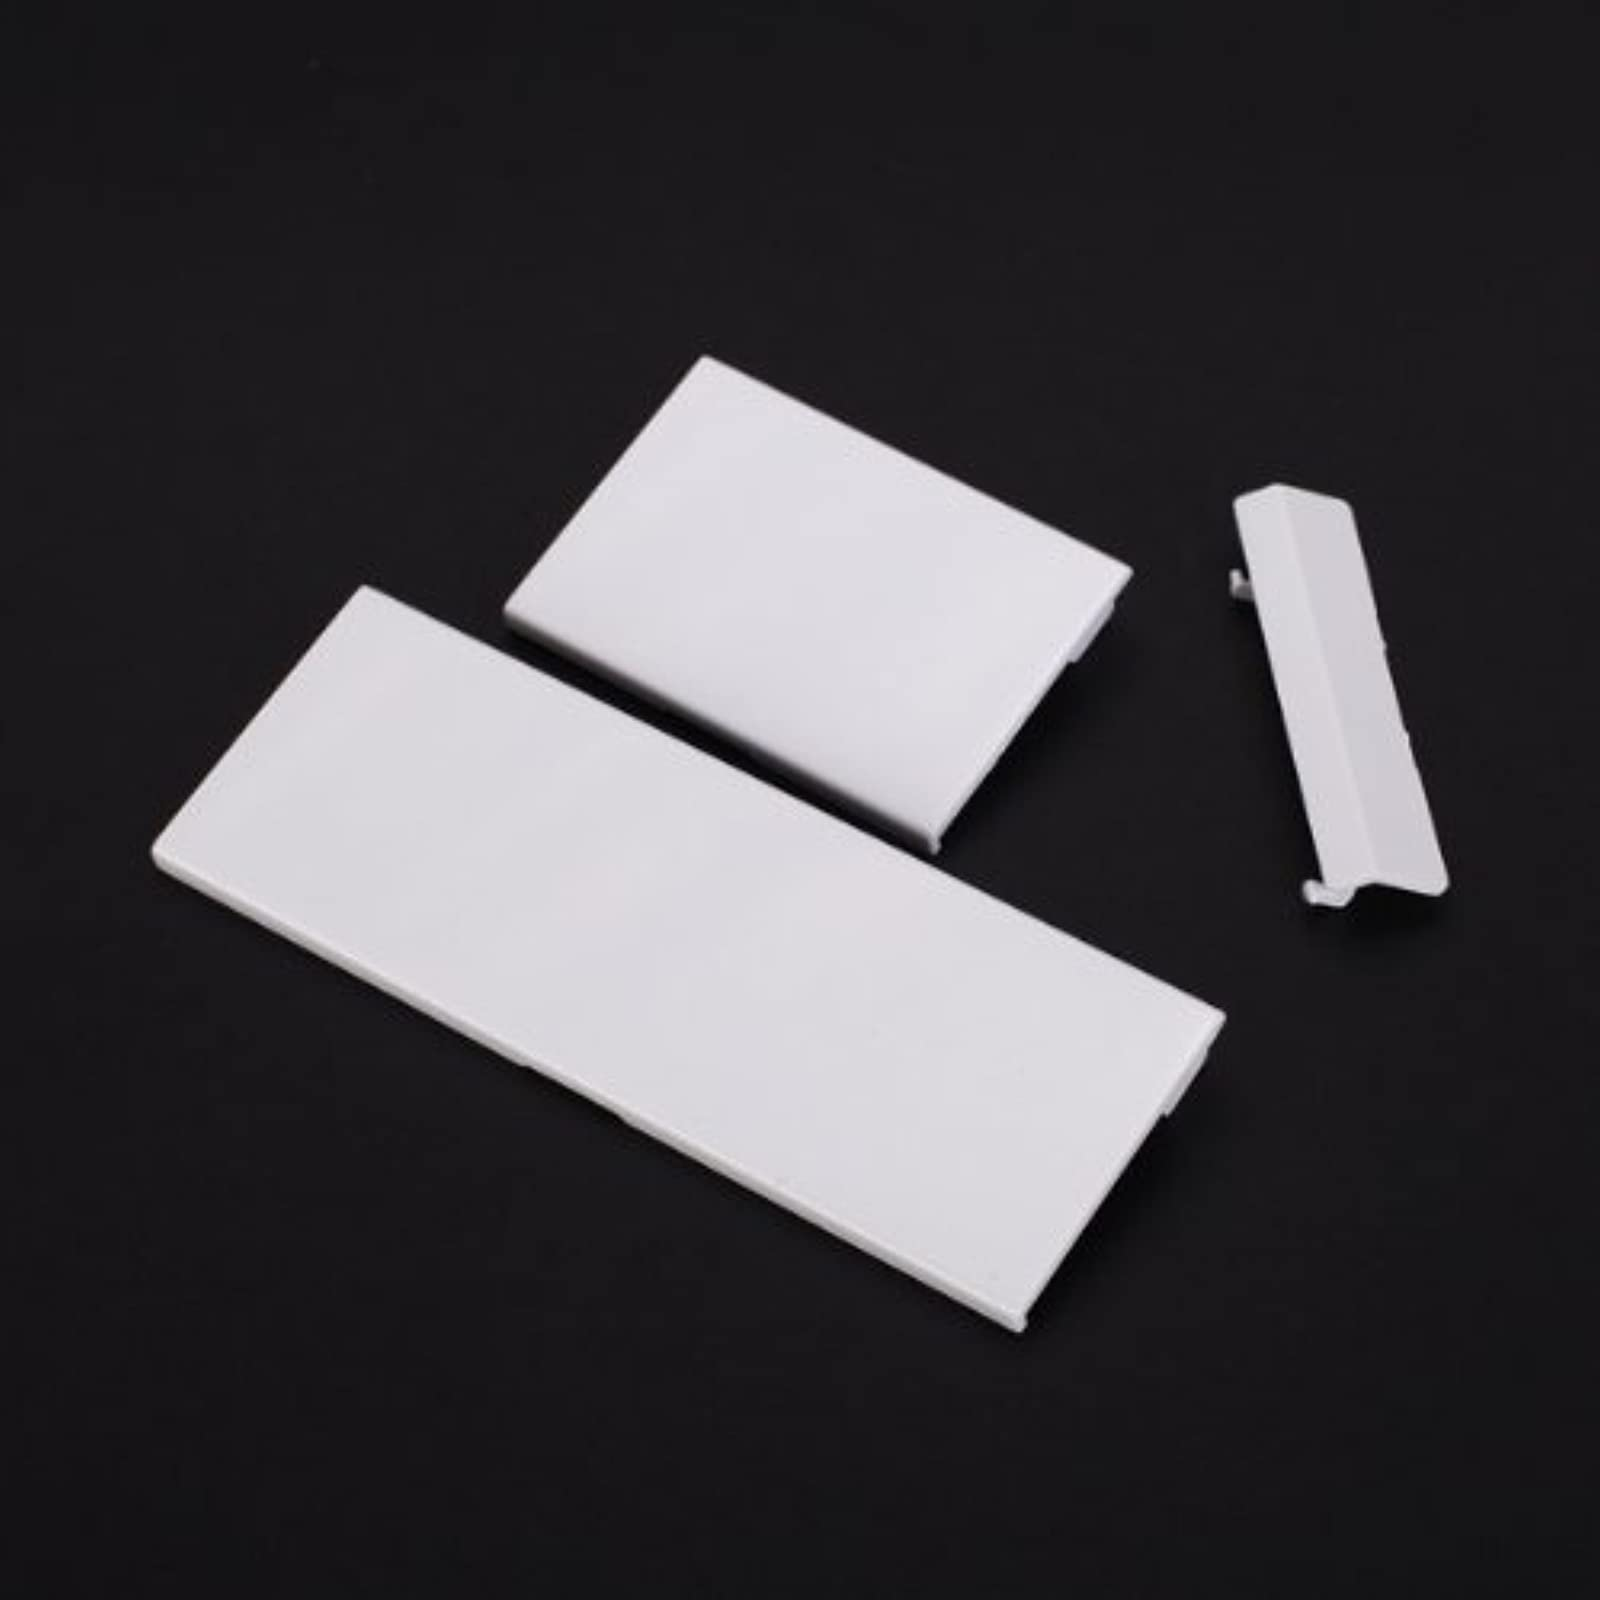 3PCS Replacement Door Slot Cover Lid For Nintendo Wii Console White